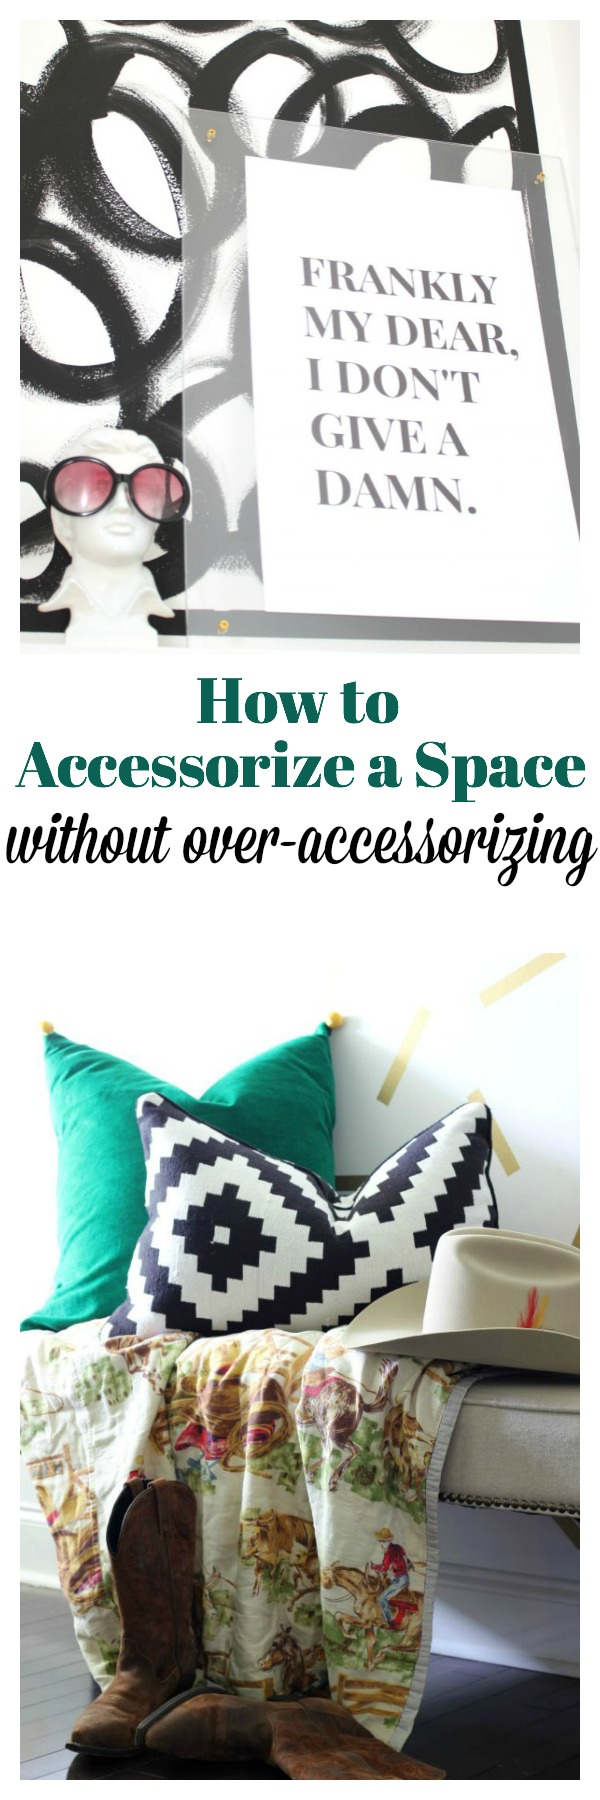 How to Accessorize a Space without OverAccessorizing